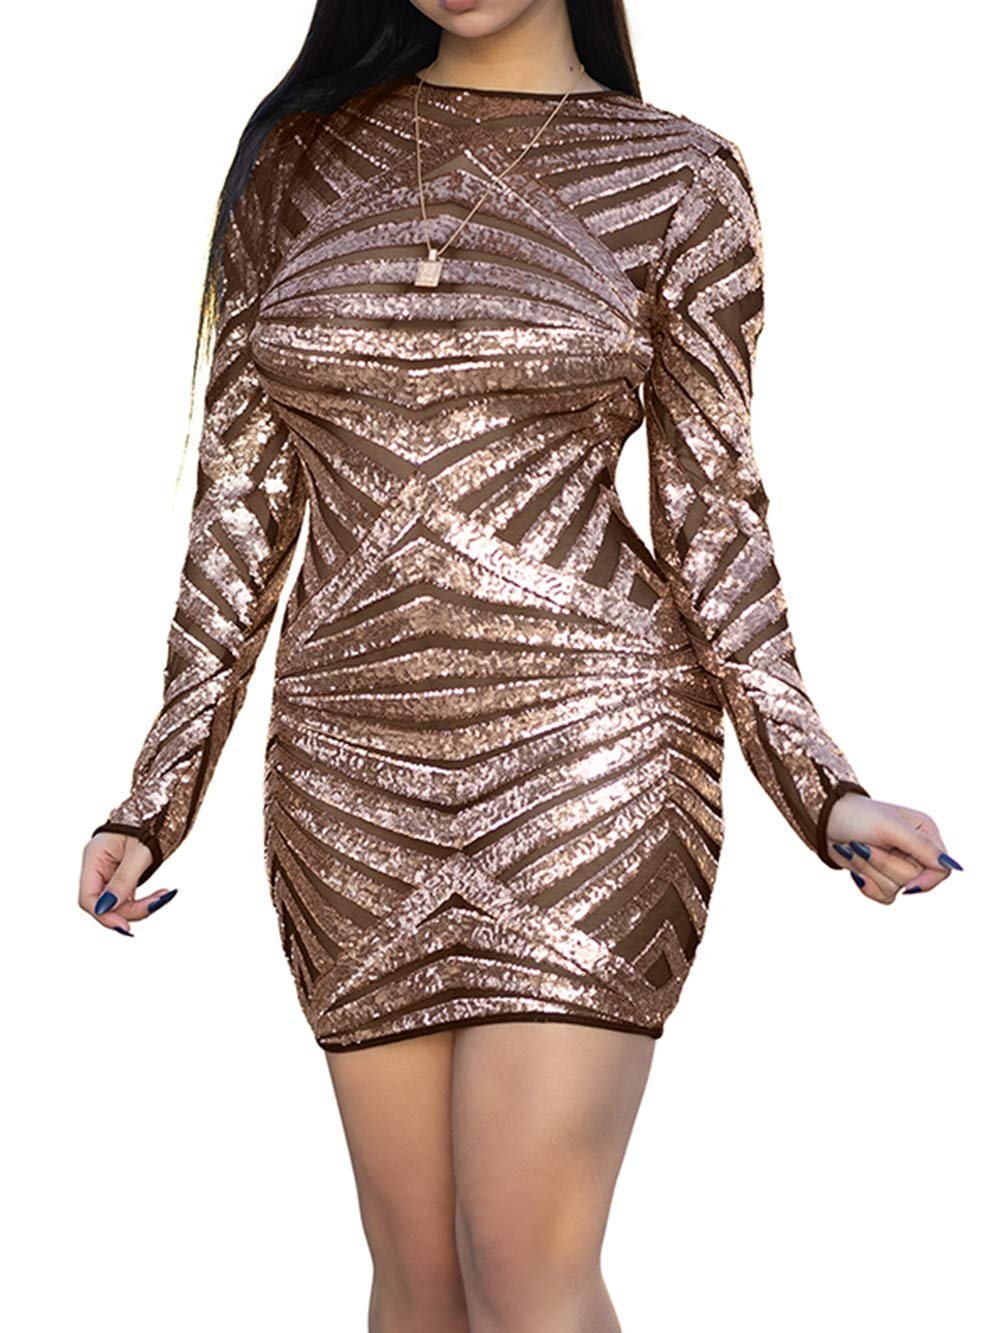 Yizenge Women's Long Sleeve Sequin Backless Bodycon Cocktail Party Mini Dress